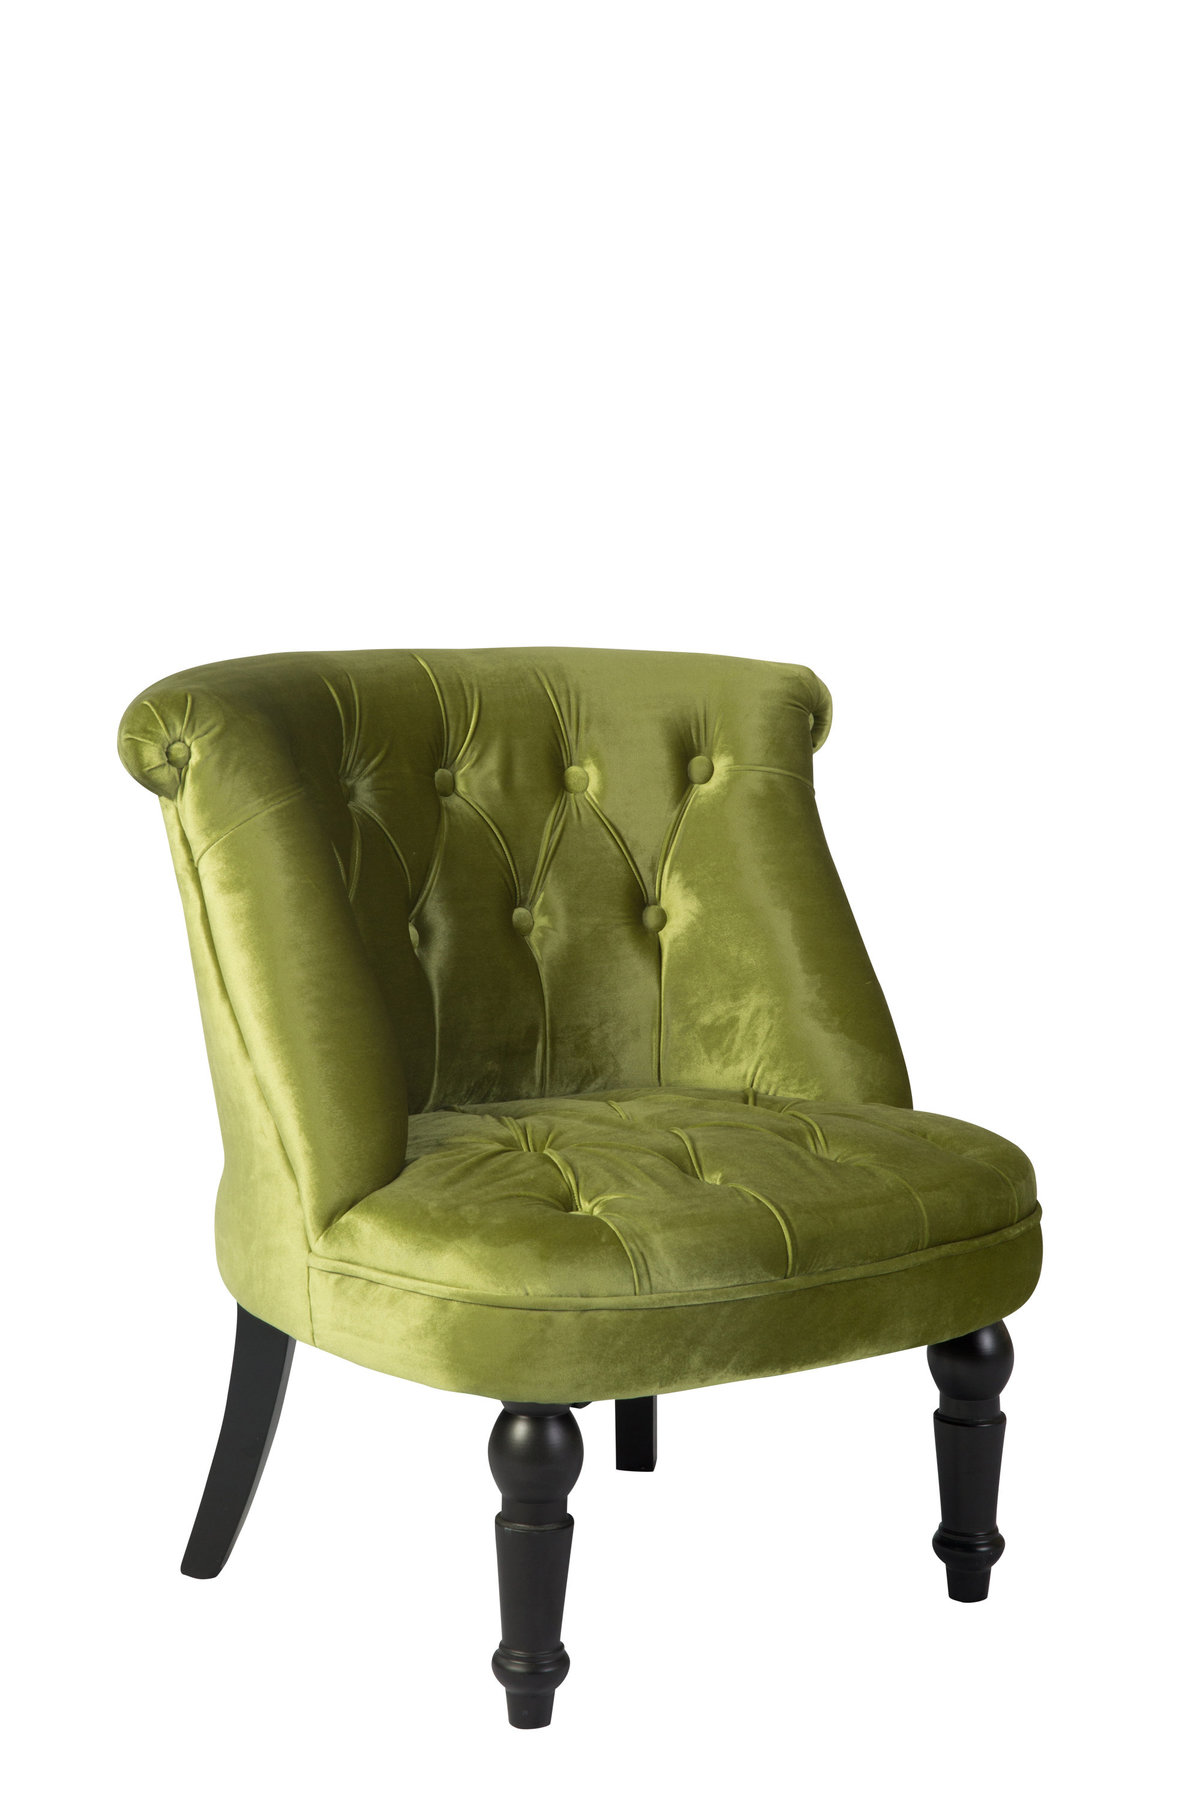 Siena Lime Green Club Chair